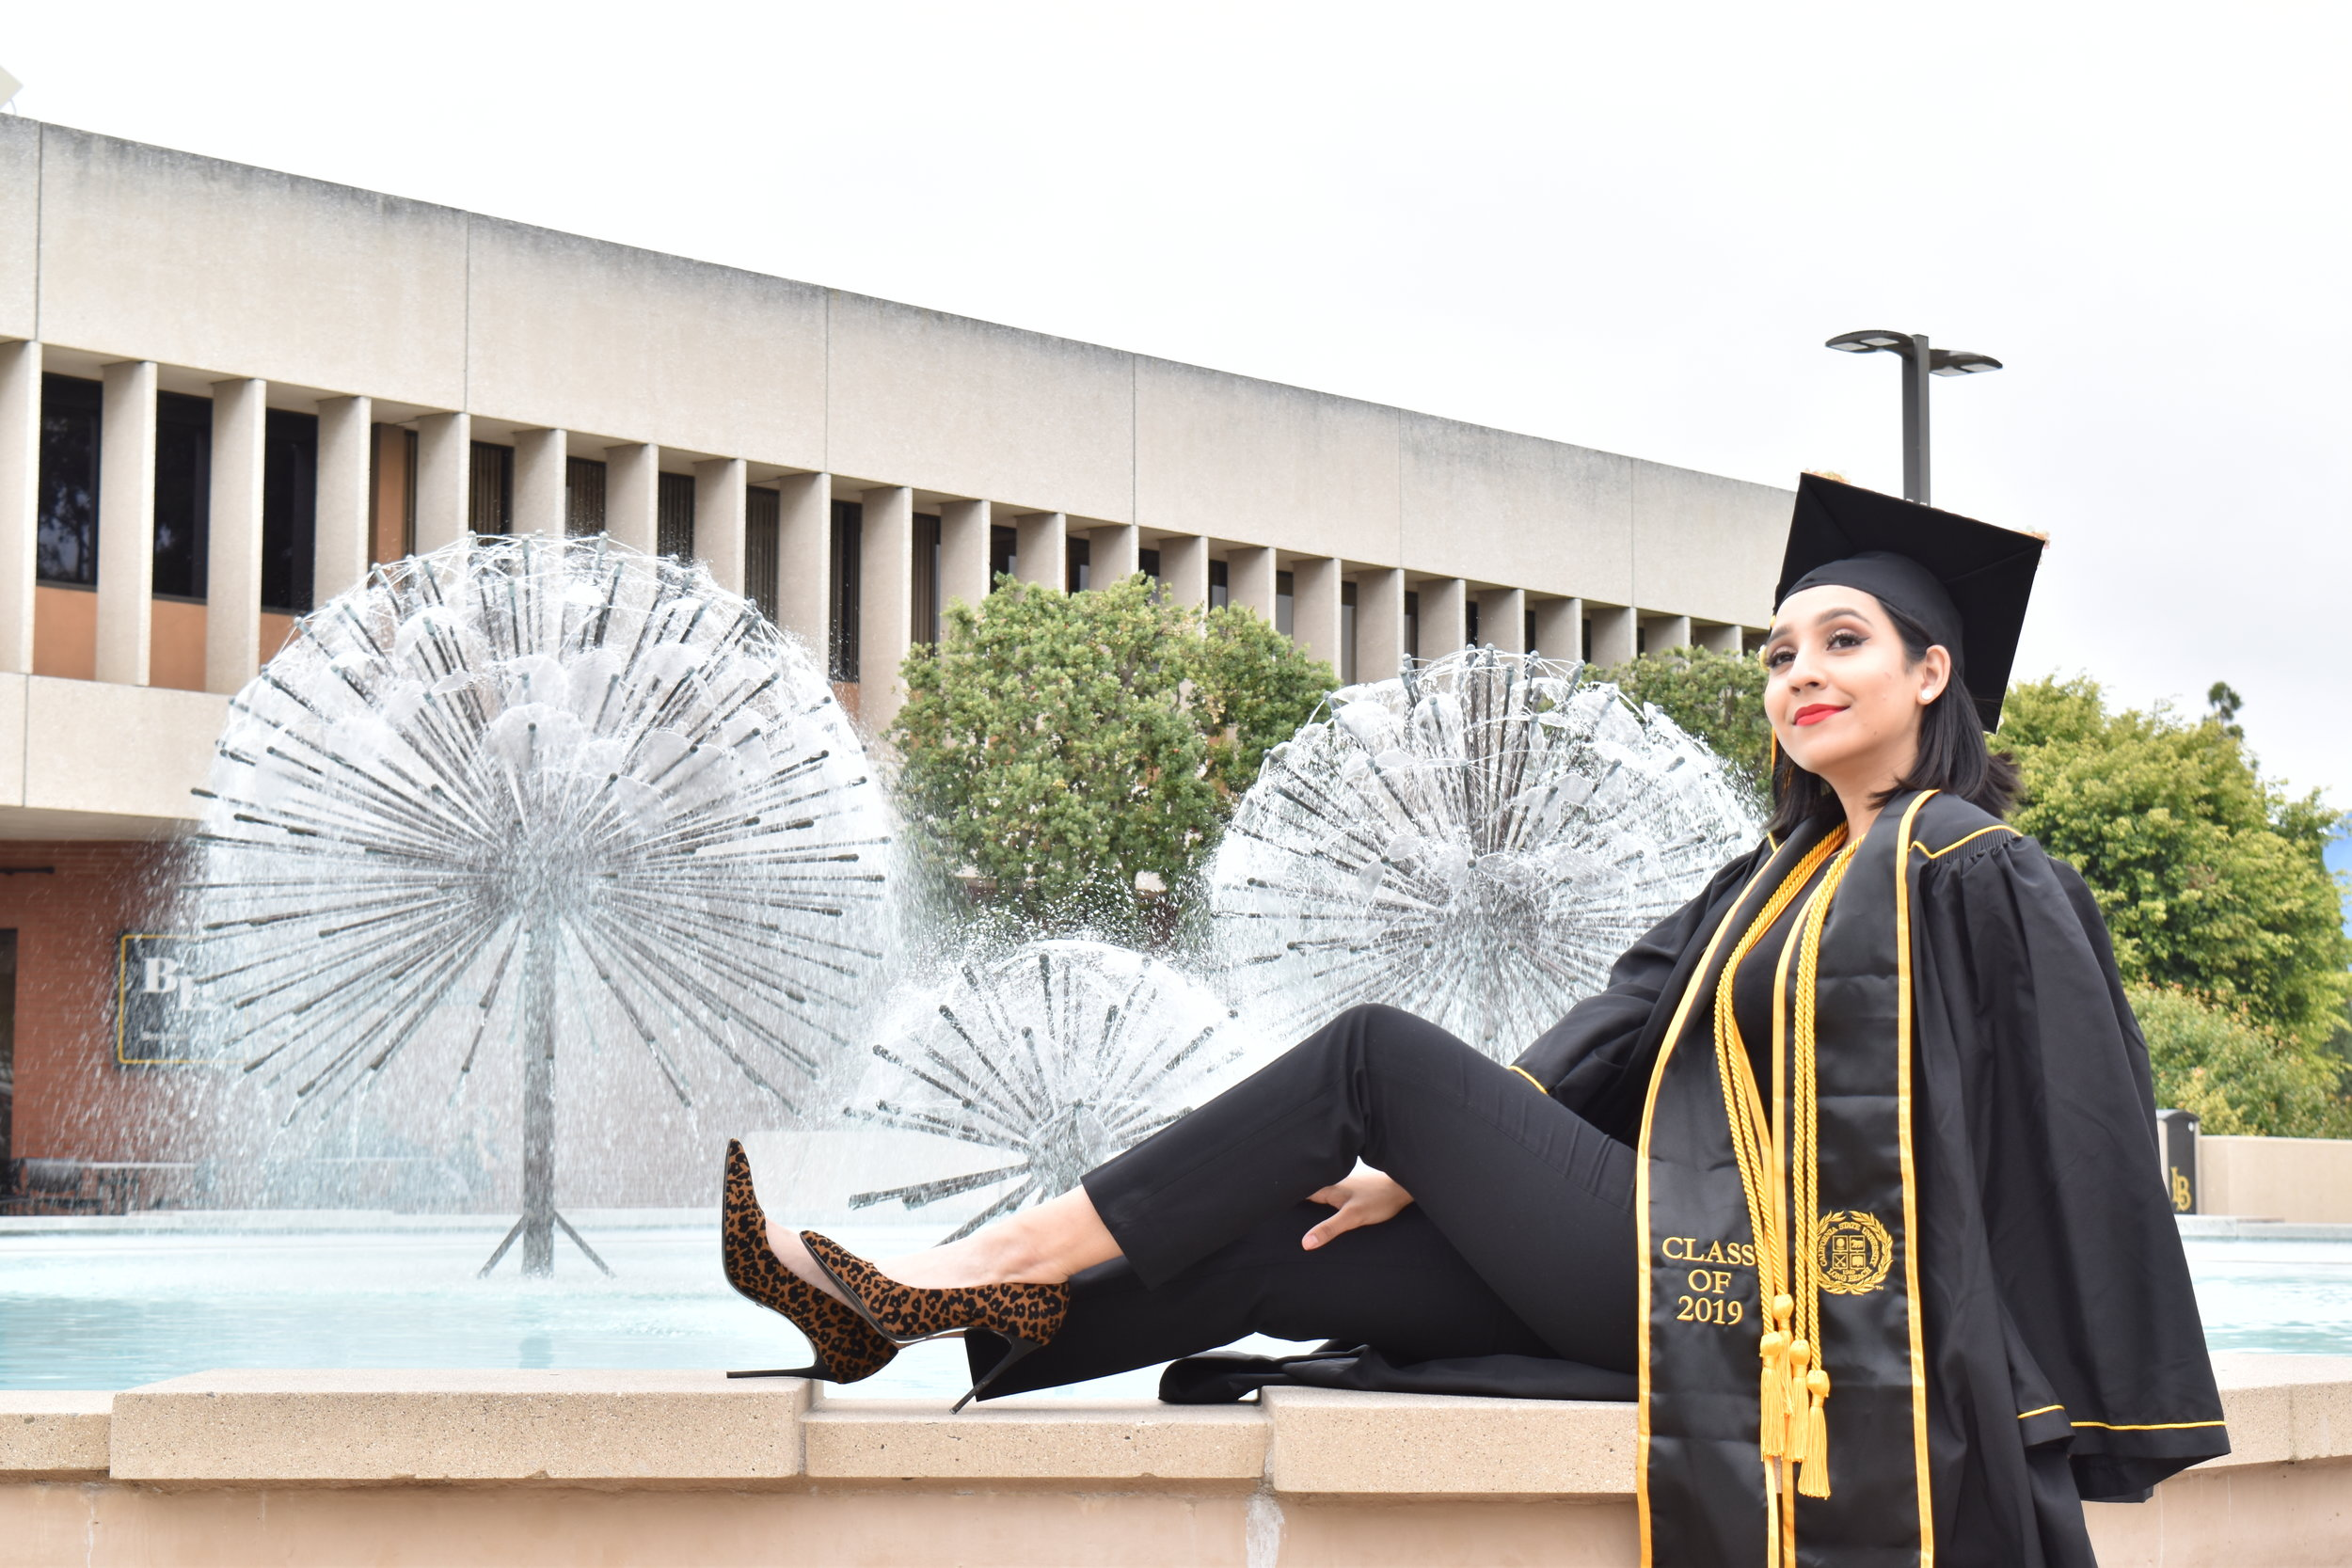 Walking with a Bachelor's degree in Journalism was something I always knew was going to happen, but at times felt insurmountable due to my depression and anxiety. It made this moment all the more triumphant. Photo courtesy of Karla Enriquez.